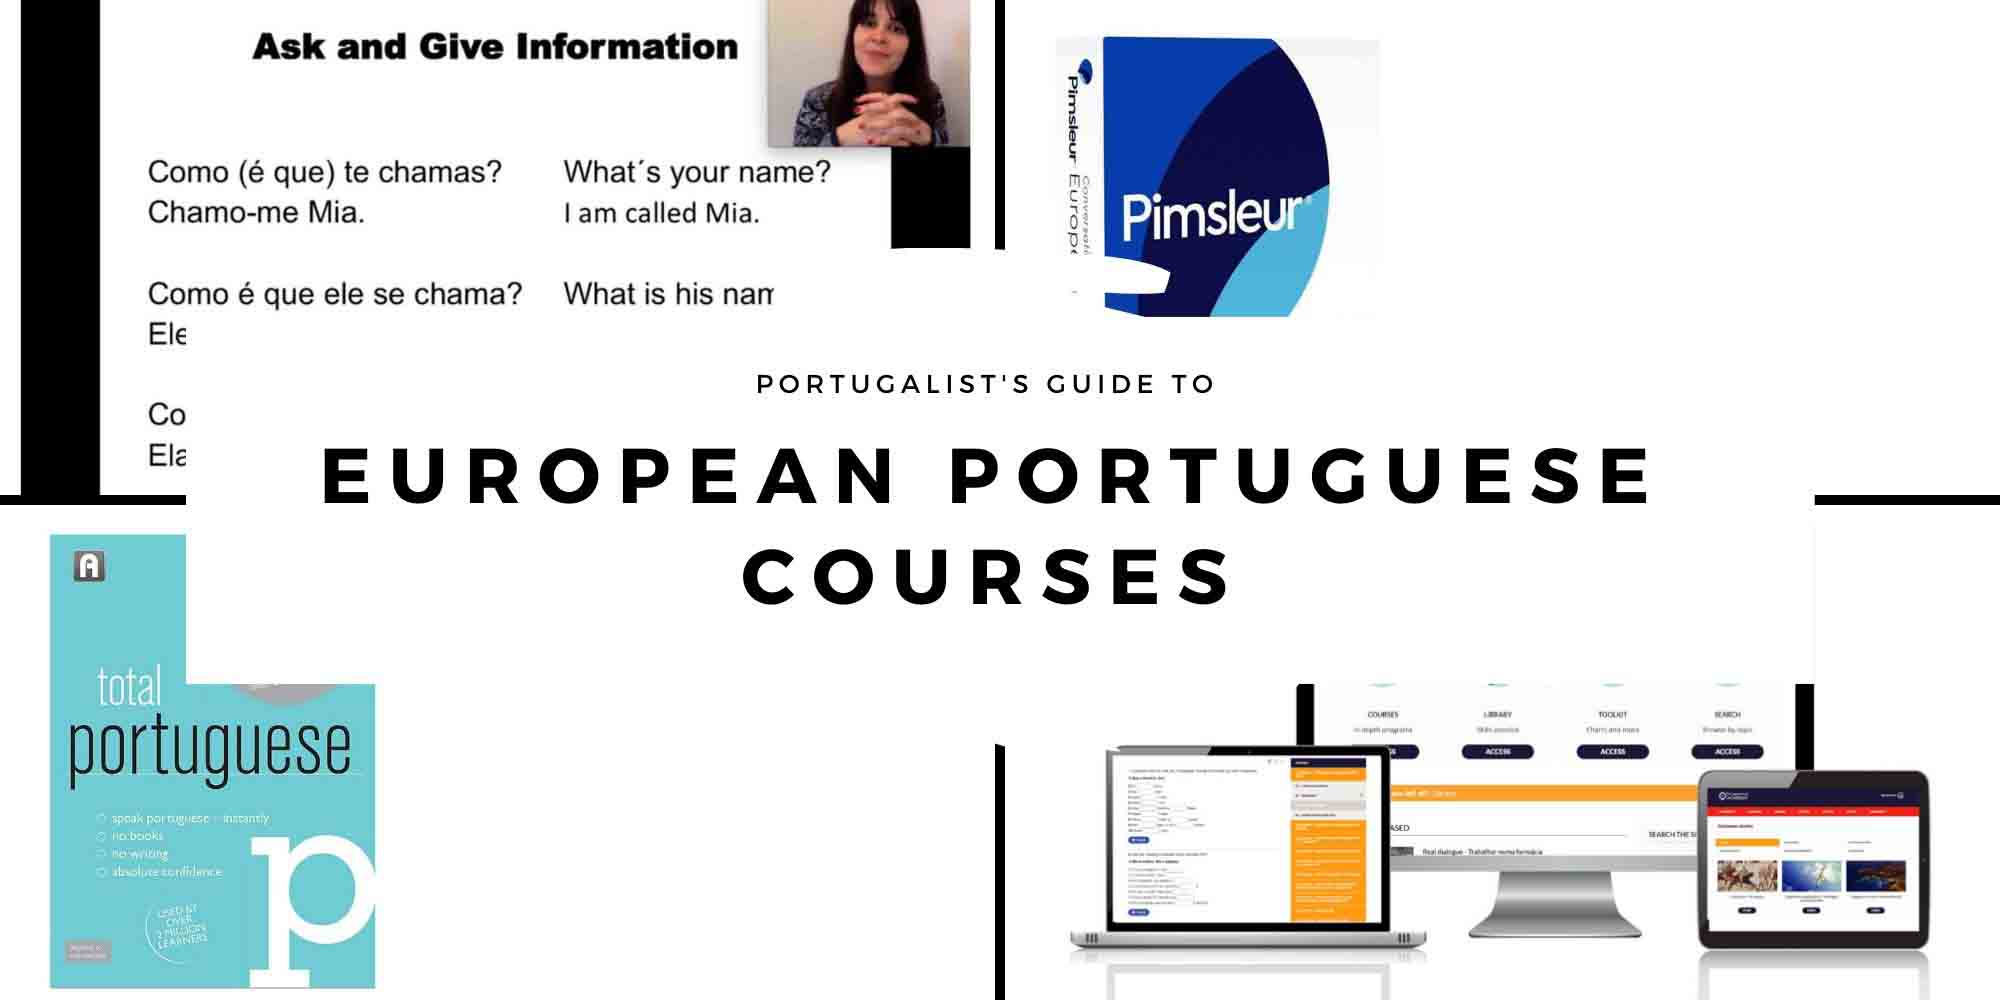 European Portuguese Courses Header